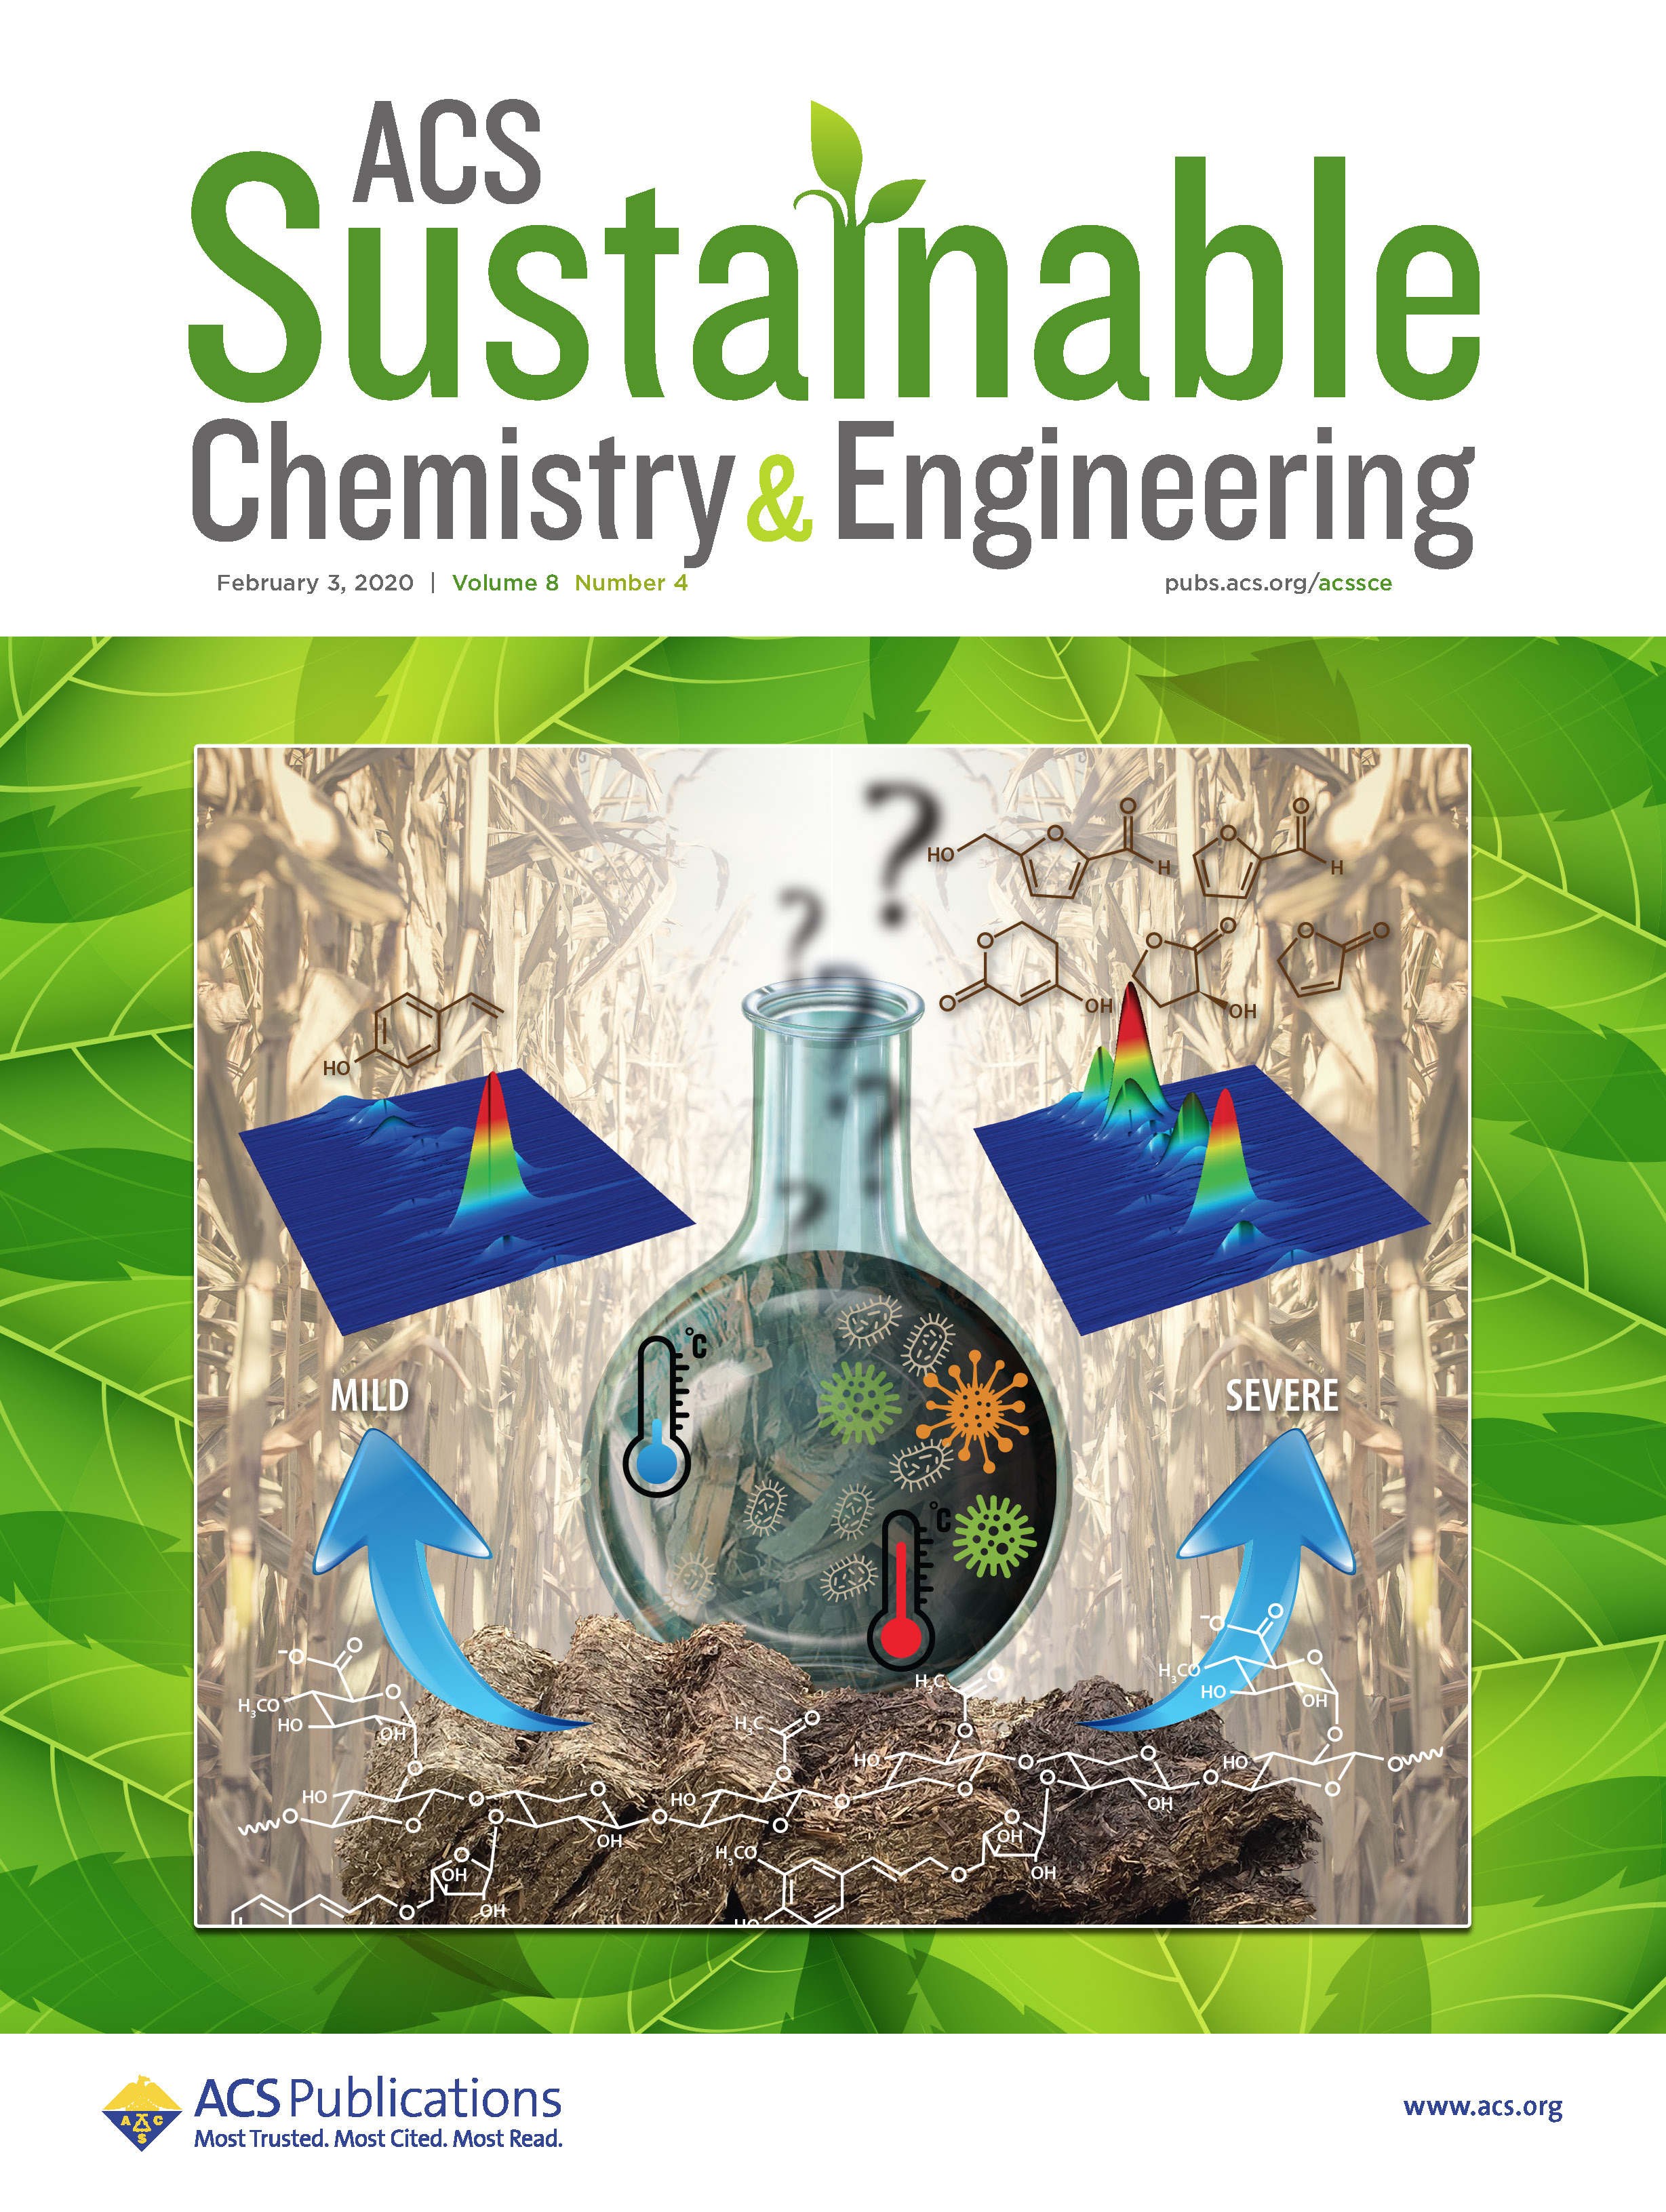 Image of Journal Article Cover Design